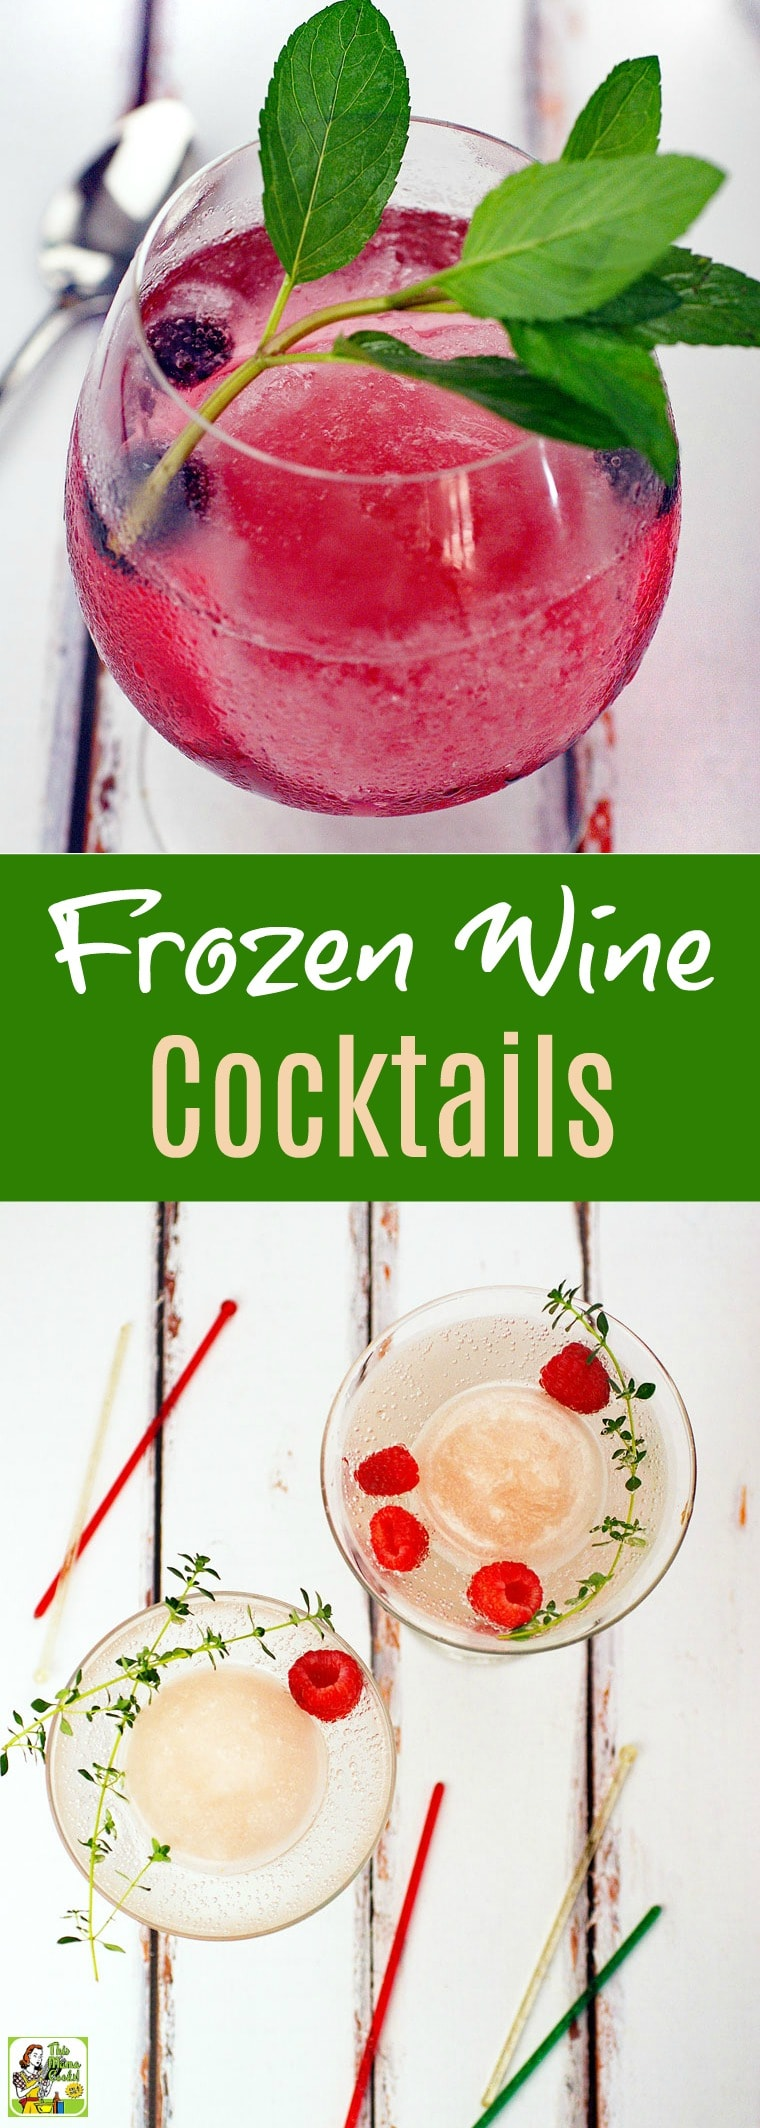 Looking for unique frozen wine drink recipes or blender cocktail recipes for your cookout party? Click to learn how to make Frozen Wine Cocktails. Get recipes for both a skinny wine cocktail and a slushy wine cocktail. These Arbor Mist Frozen wine cocktails will be a hit at your party.